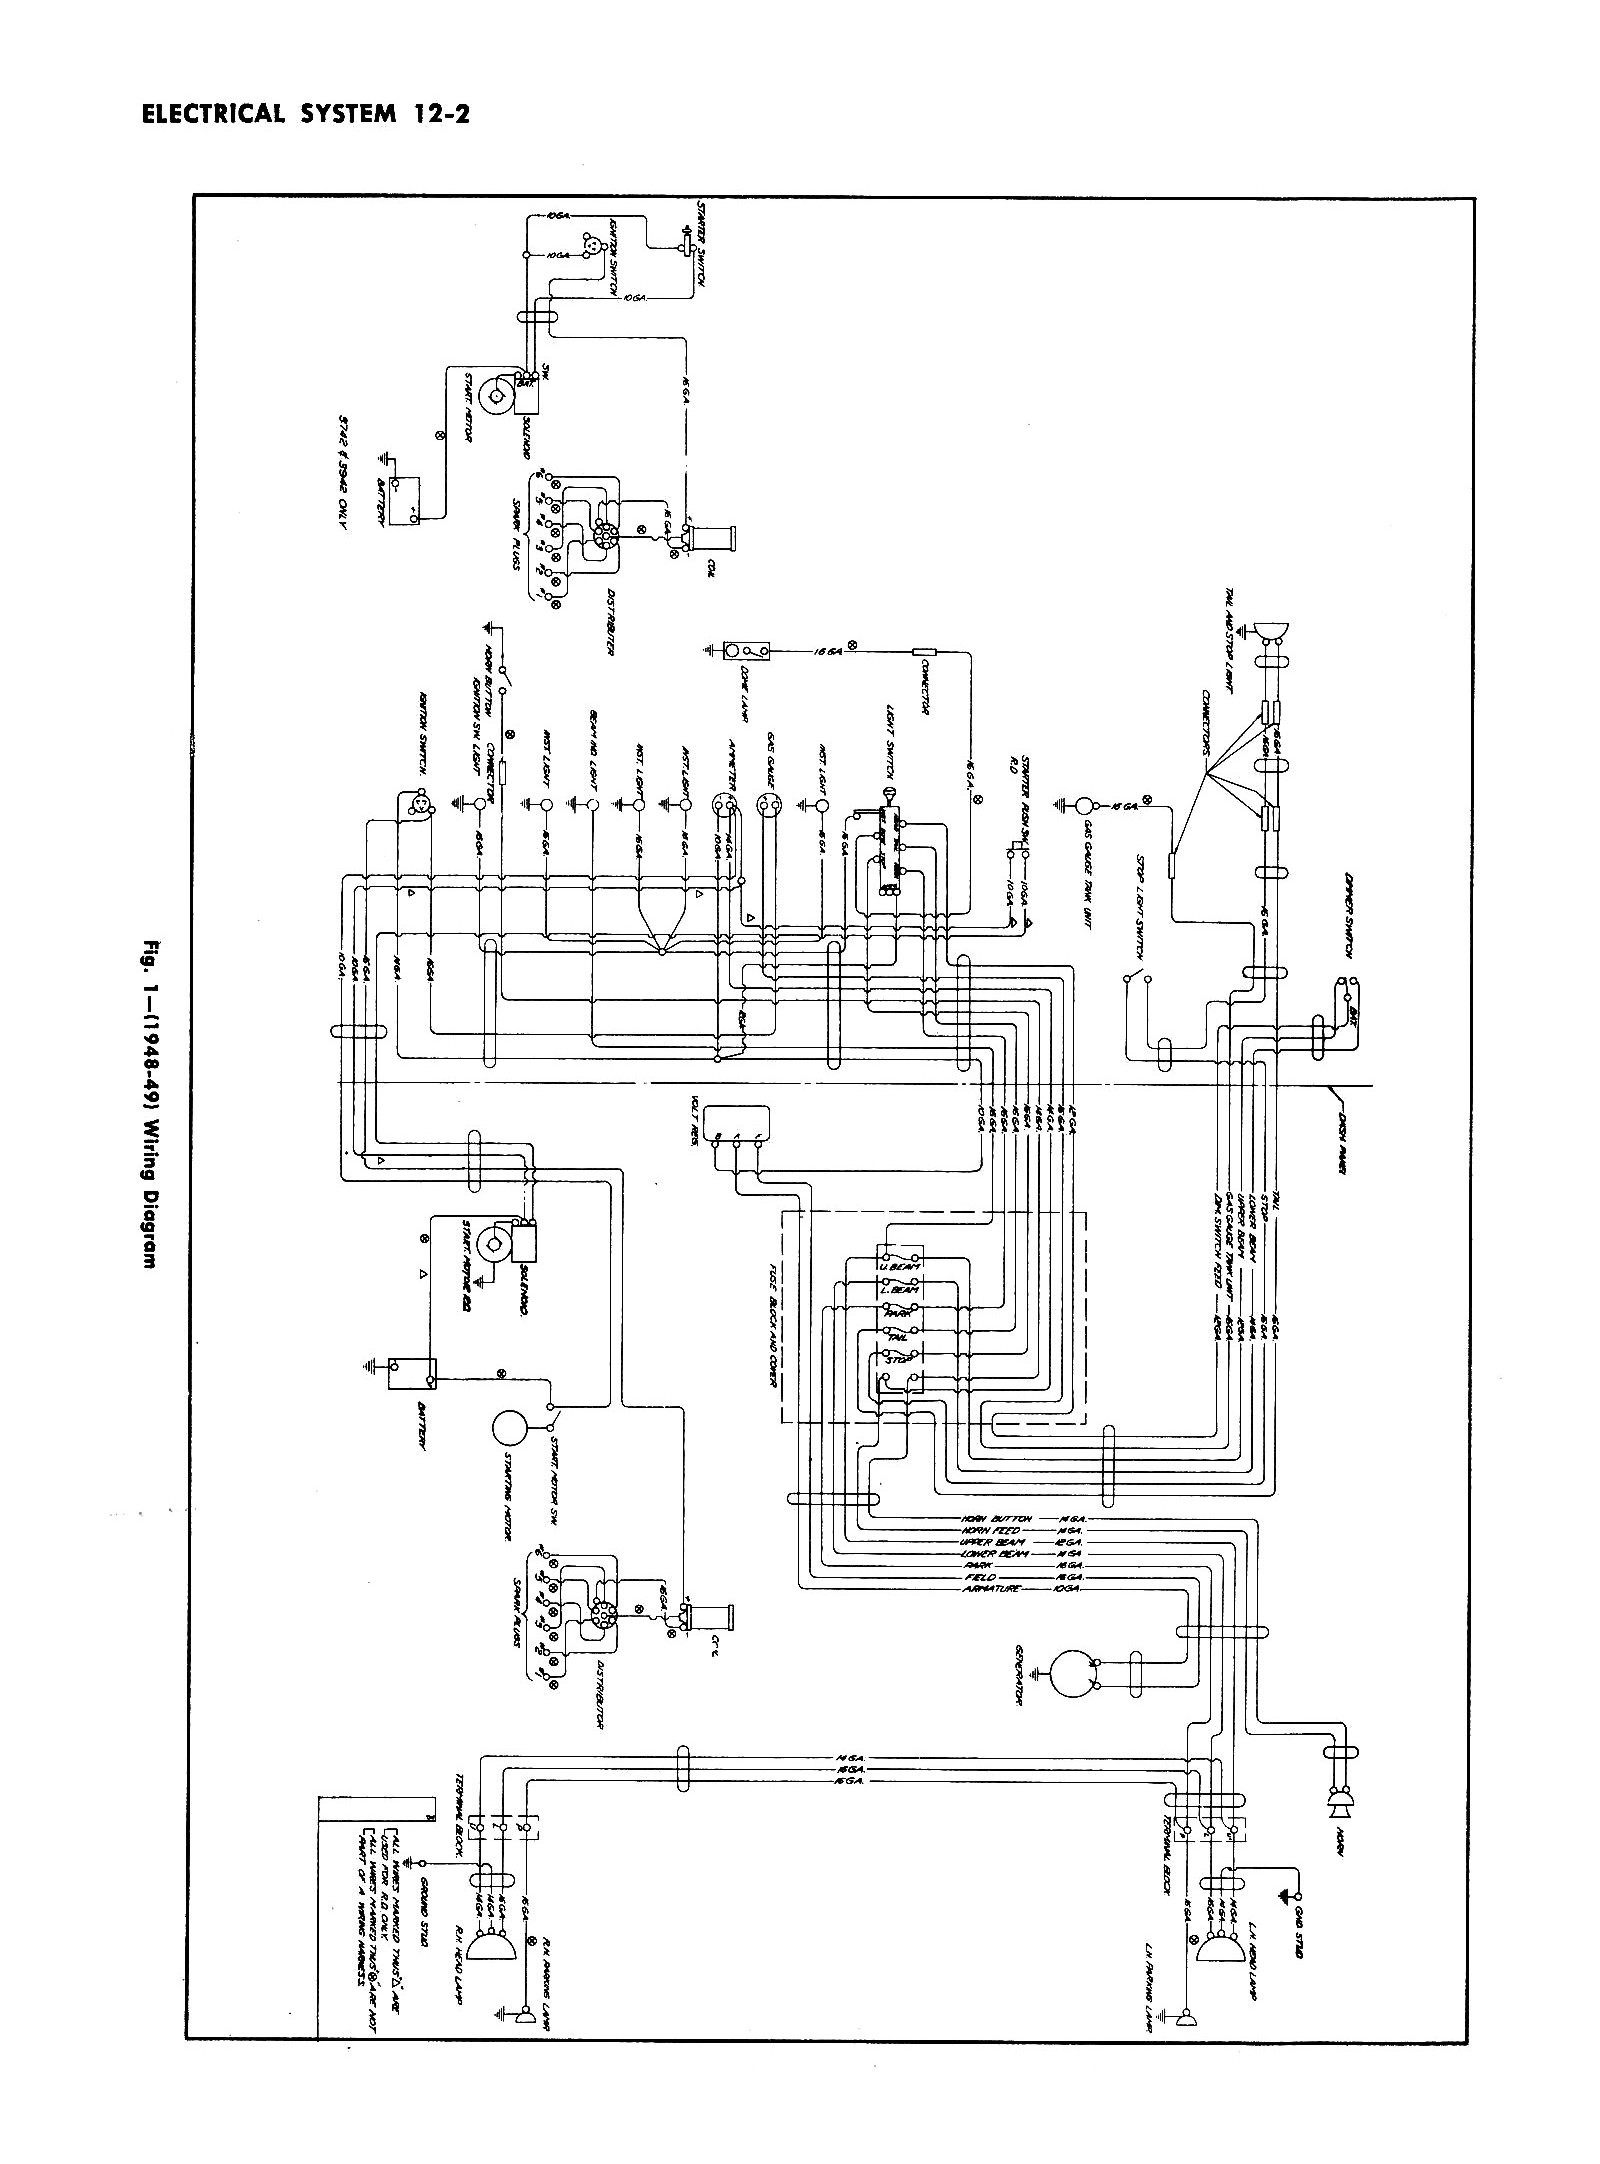 1949 chevrolet deluxe wiring diagram trusted wiring diagram u2022 rh soulmatestyle co 1949 chevy pickup wiring harness 1949 chevy truck wiring